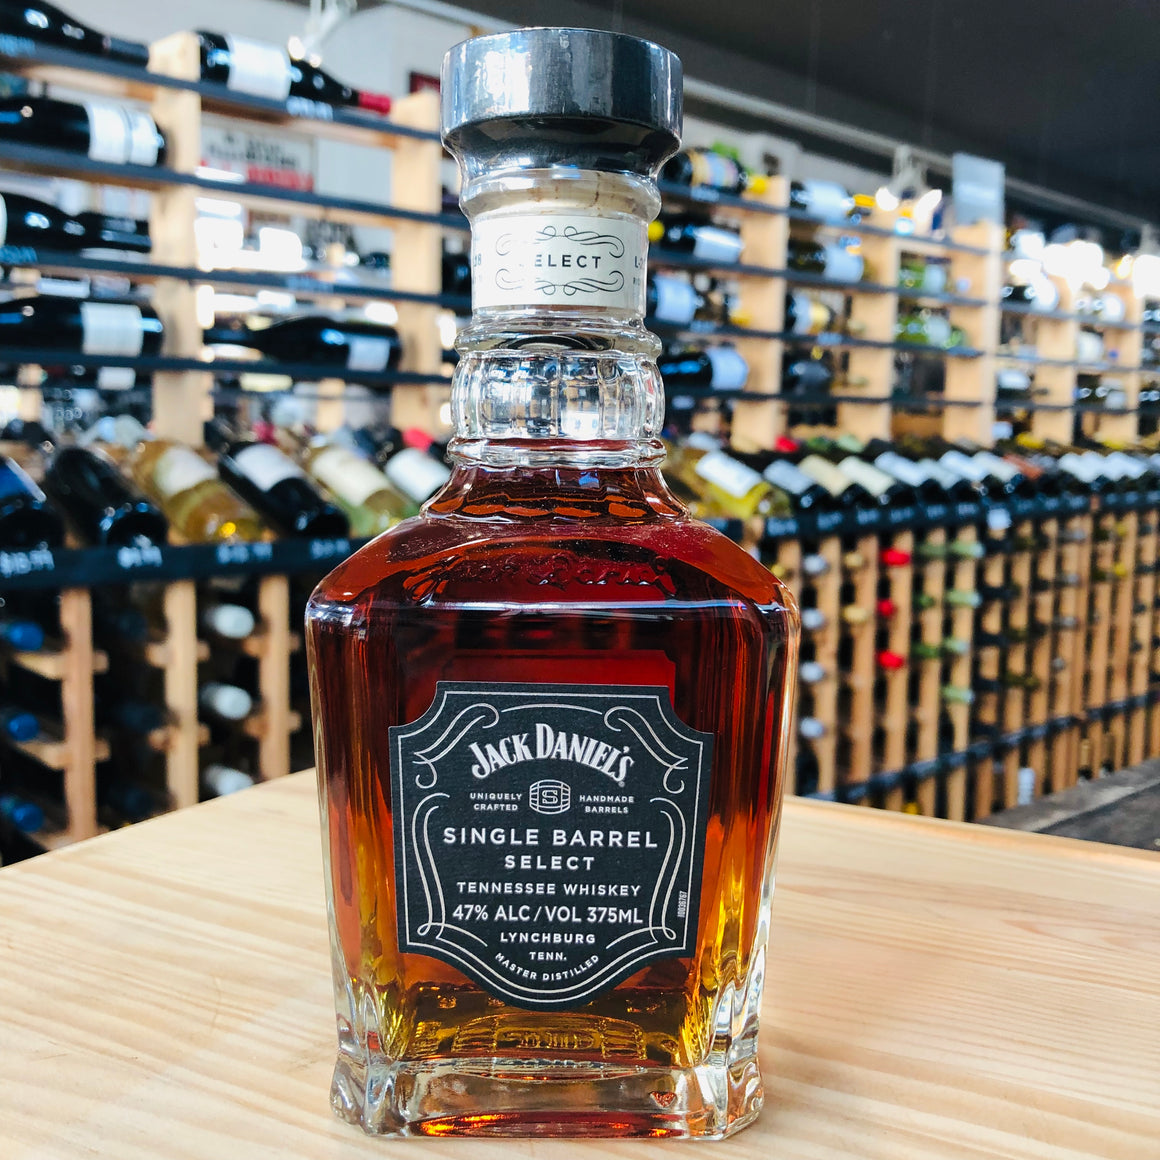 JACK DANIEL'S SINGLE BARREL SELECT WHISKEY 375ML